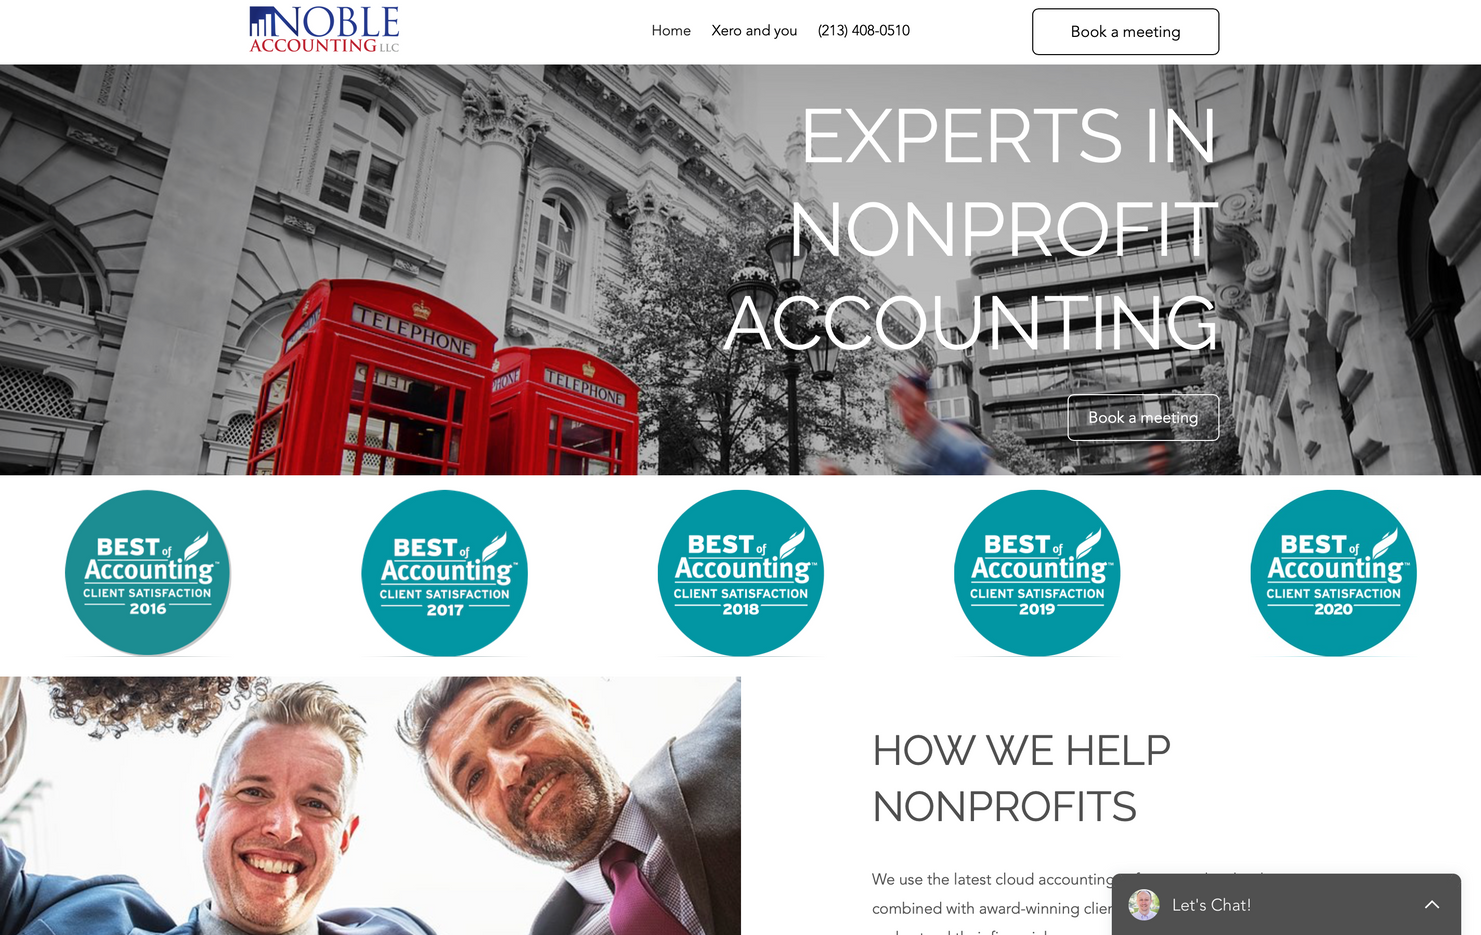 Noble Accounting